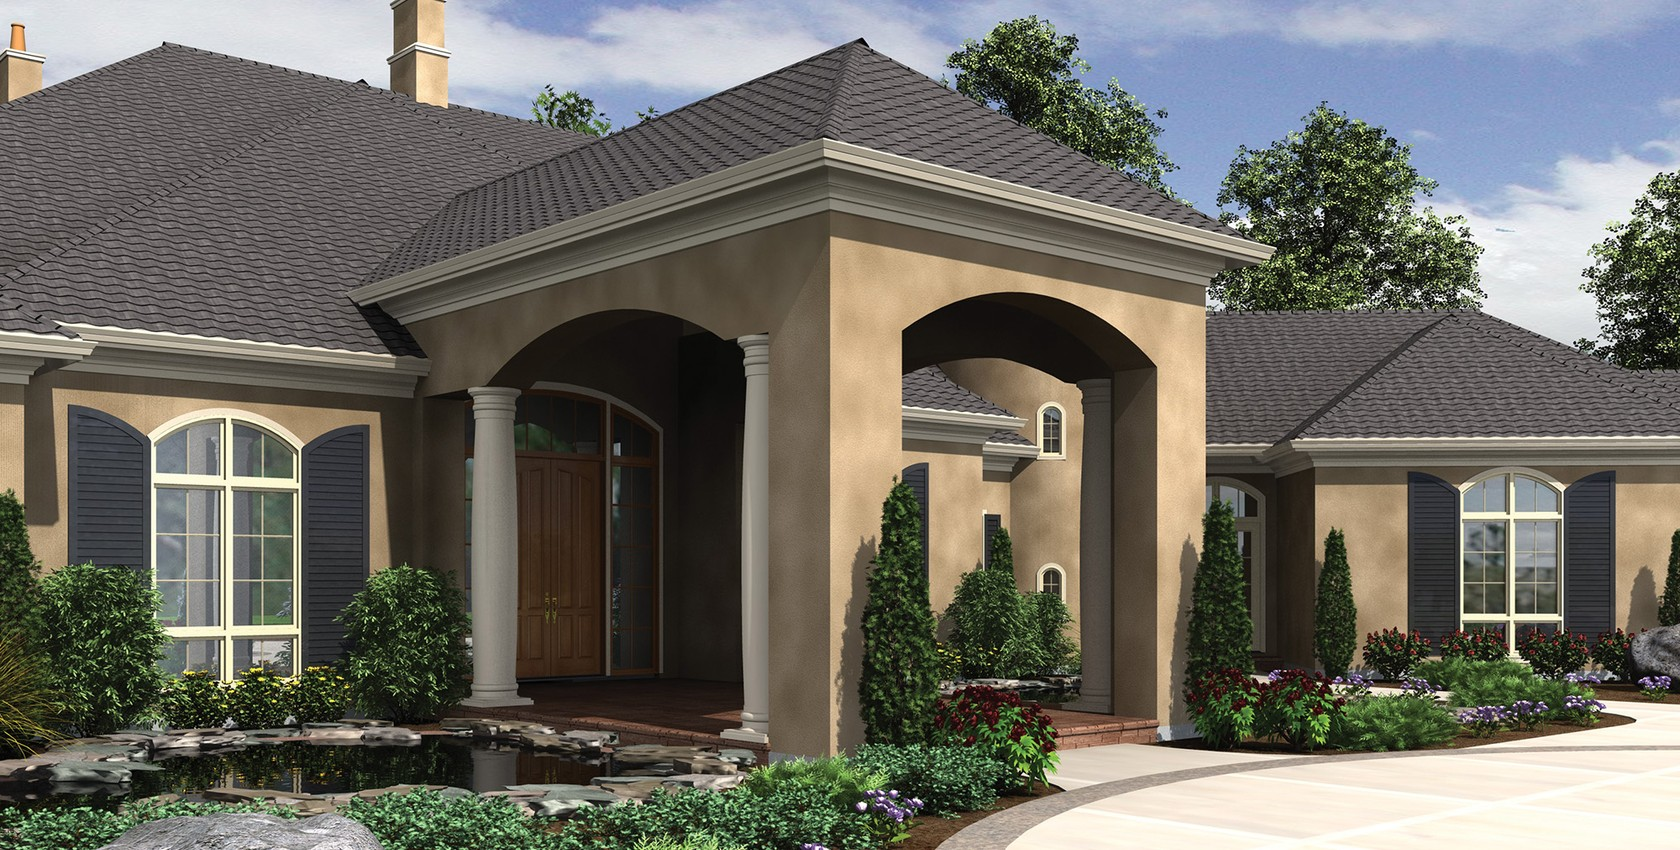 Image for Galloway-European Luxury Home Fit for Royalty-2910